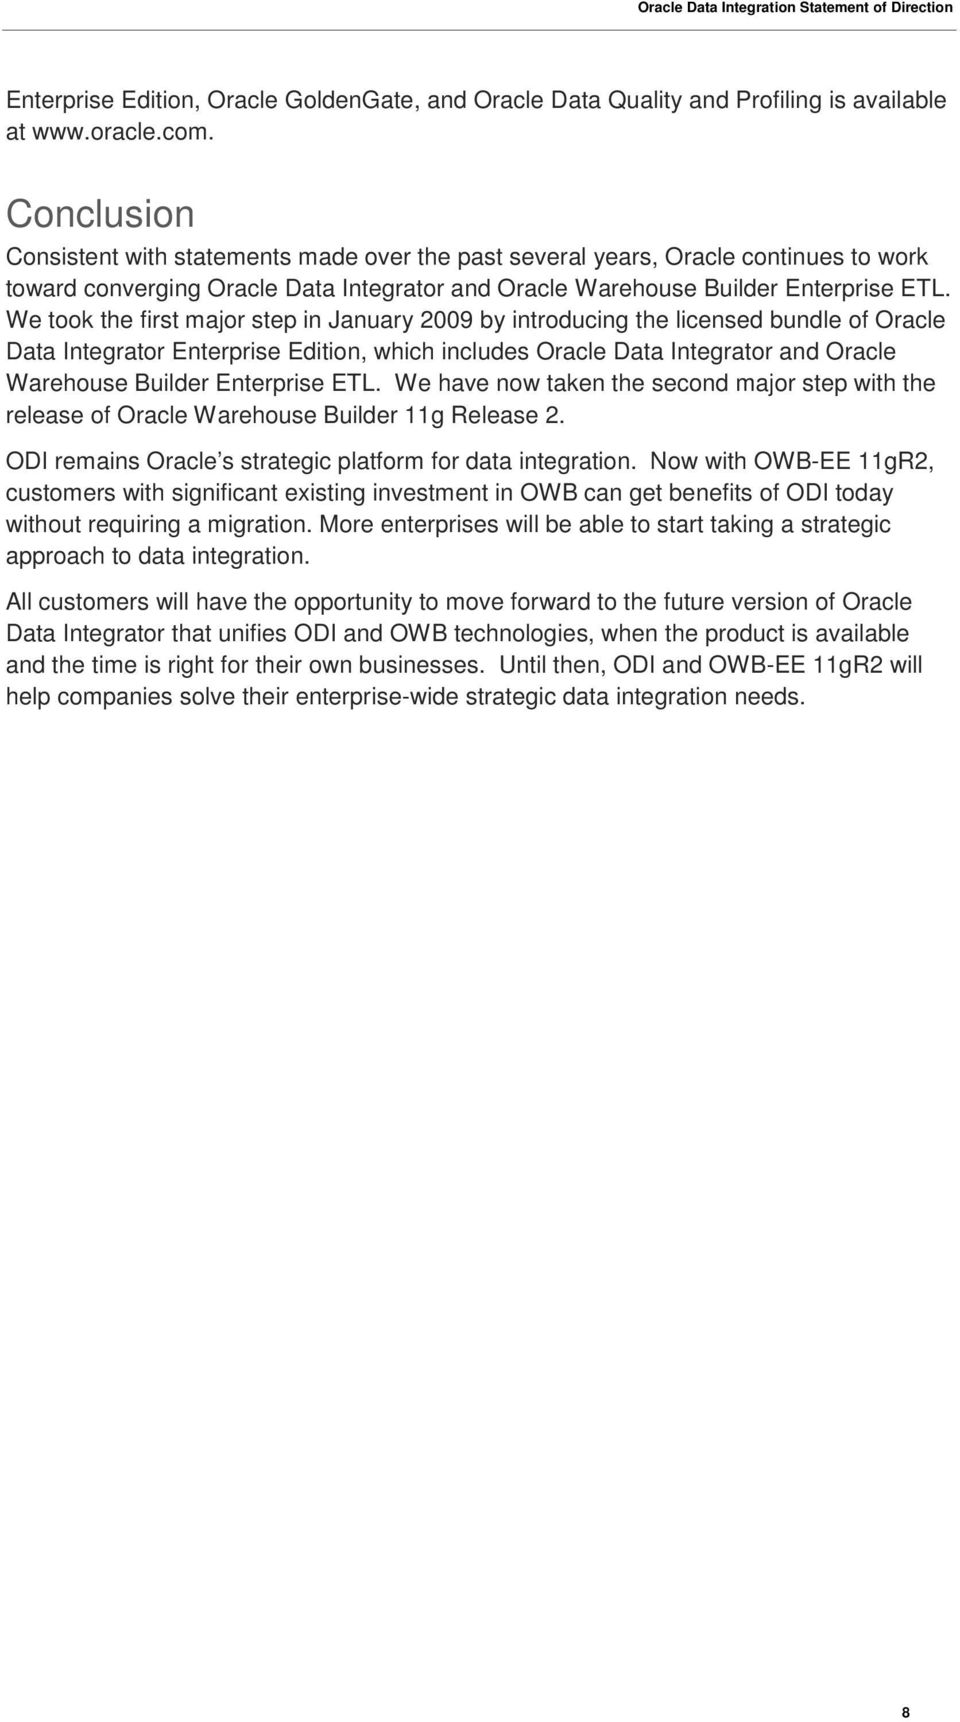 We took the first major step in January 2009 by introducing the licensed bundle of Oracle Data Integrator Enterprise Edition, which includes Oracle Data Integrator and Oracle Warehouse Builder